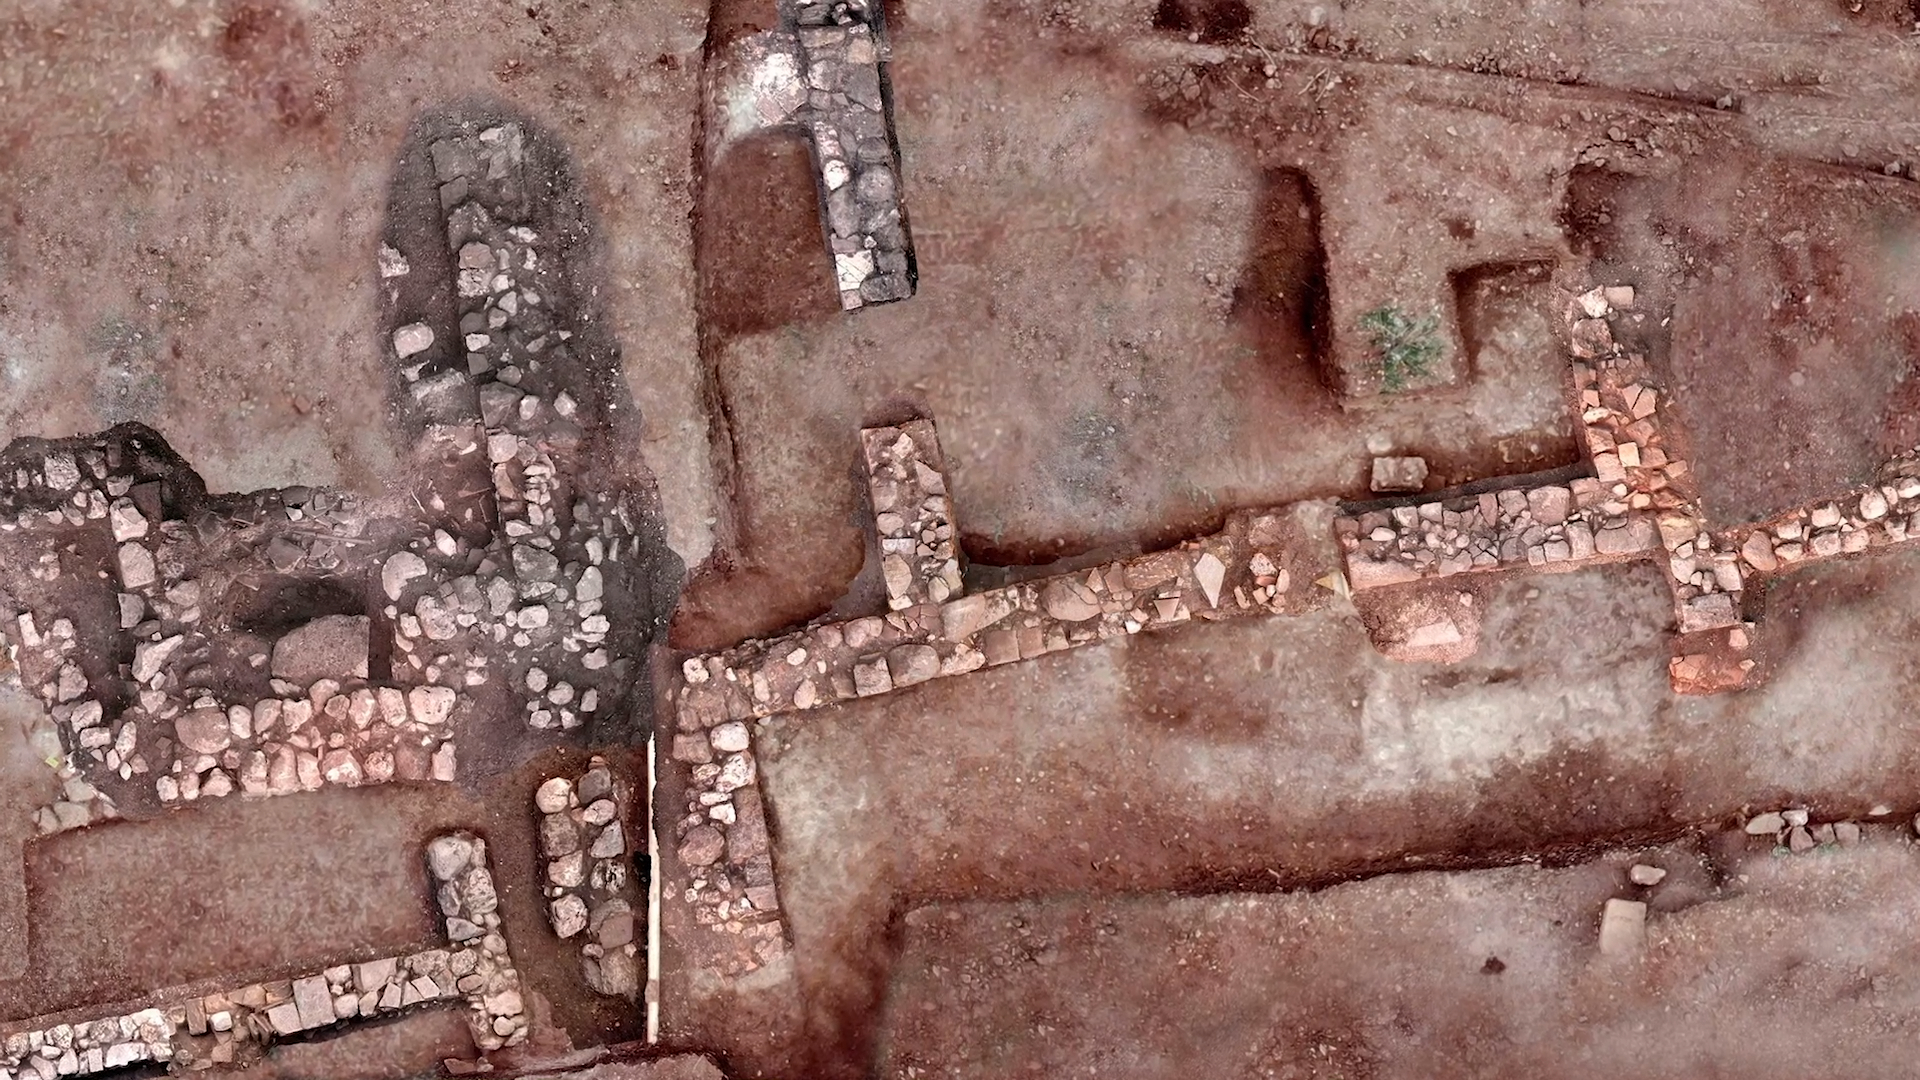 The lost ancient city of Tenea has been found according to Greek authorities